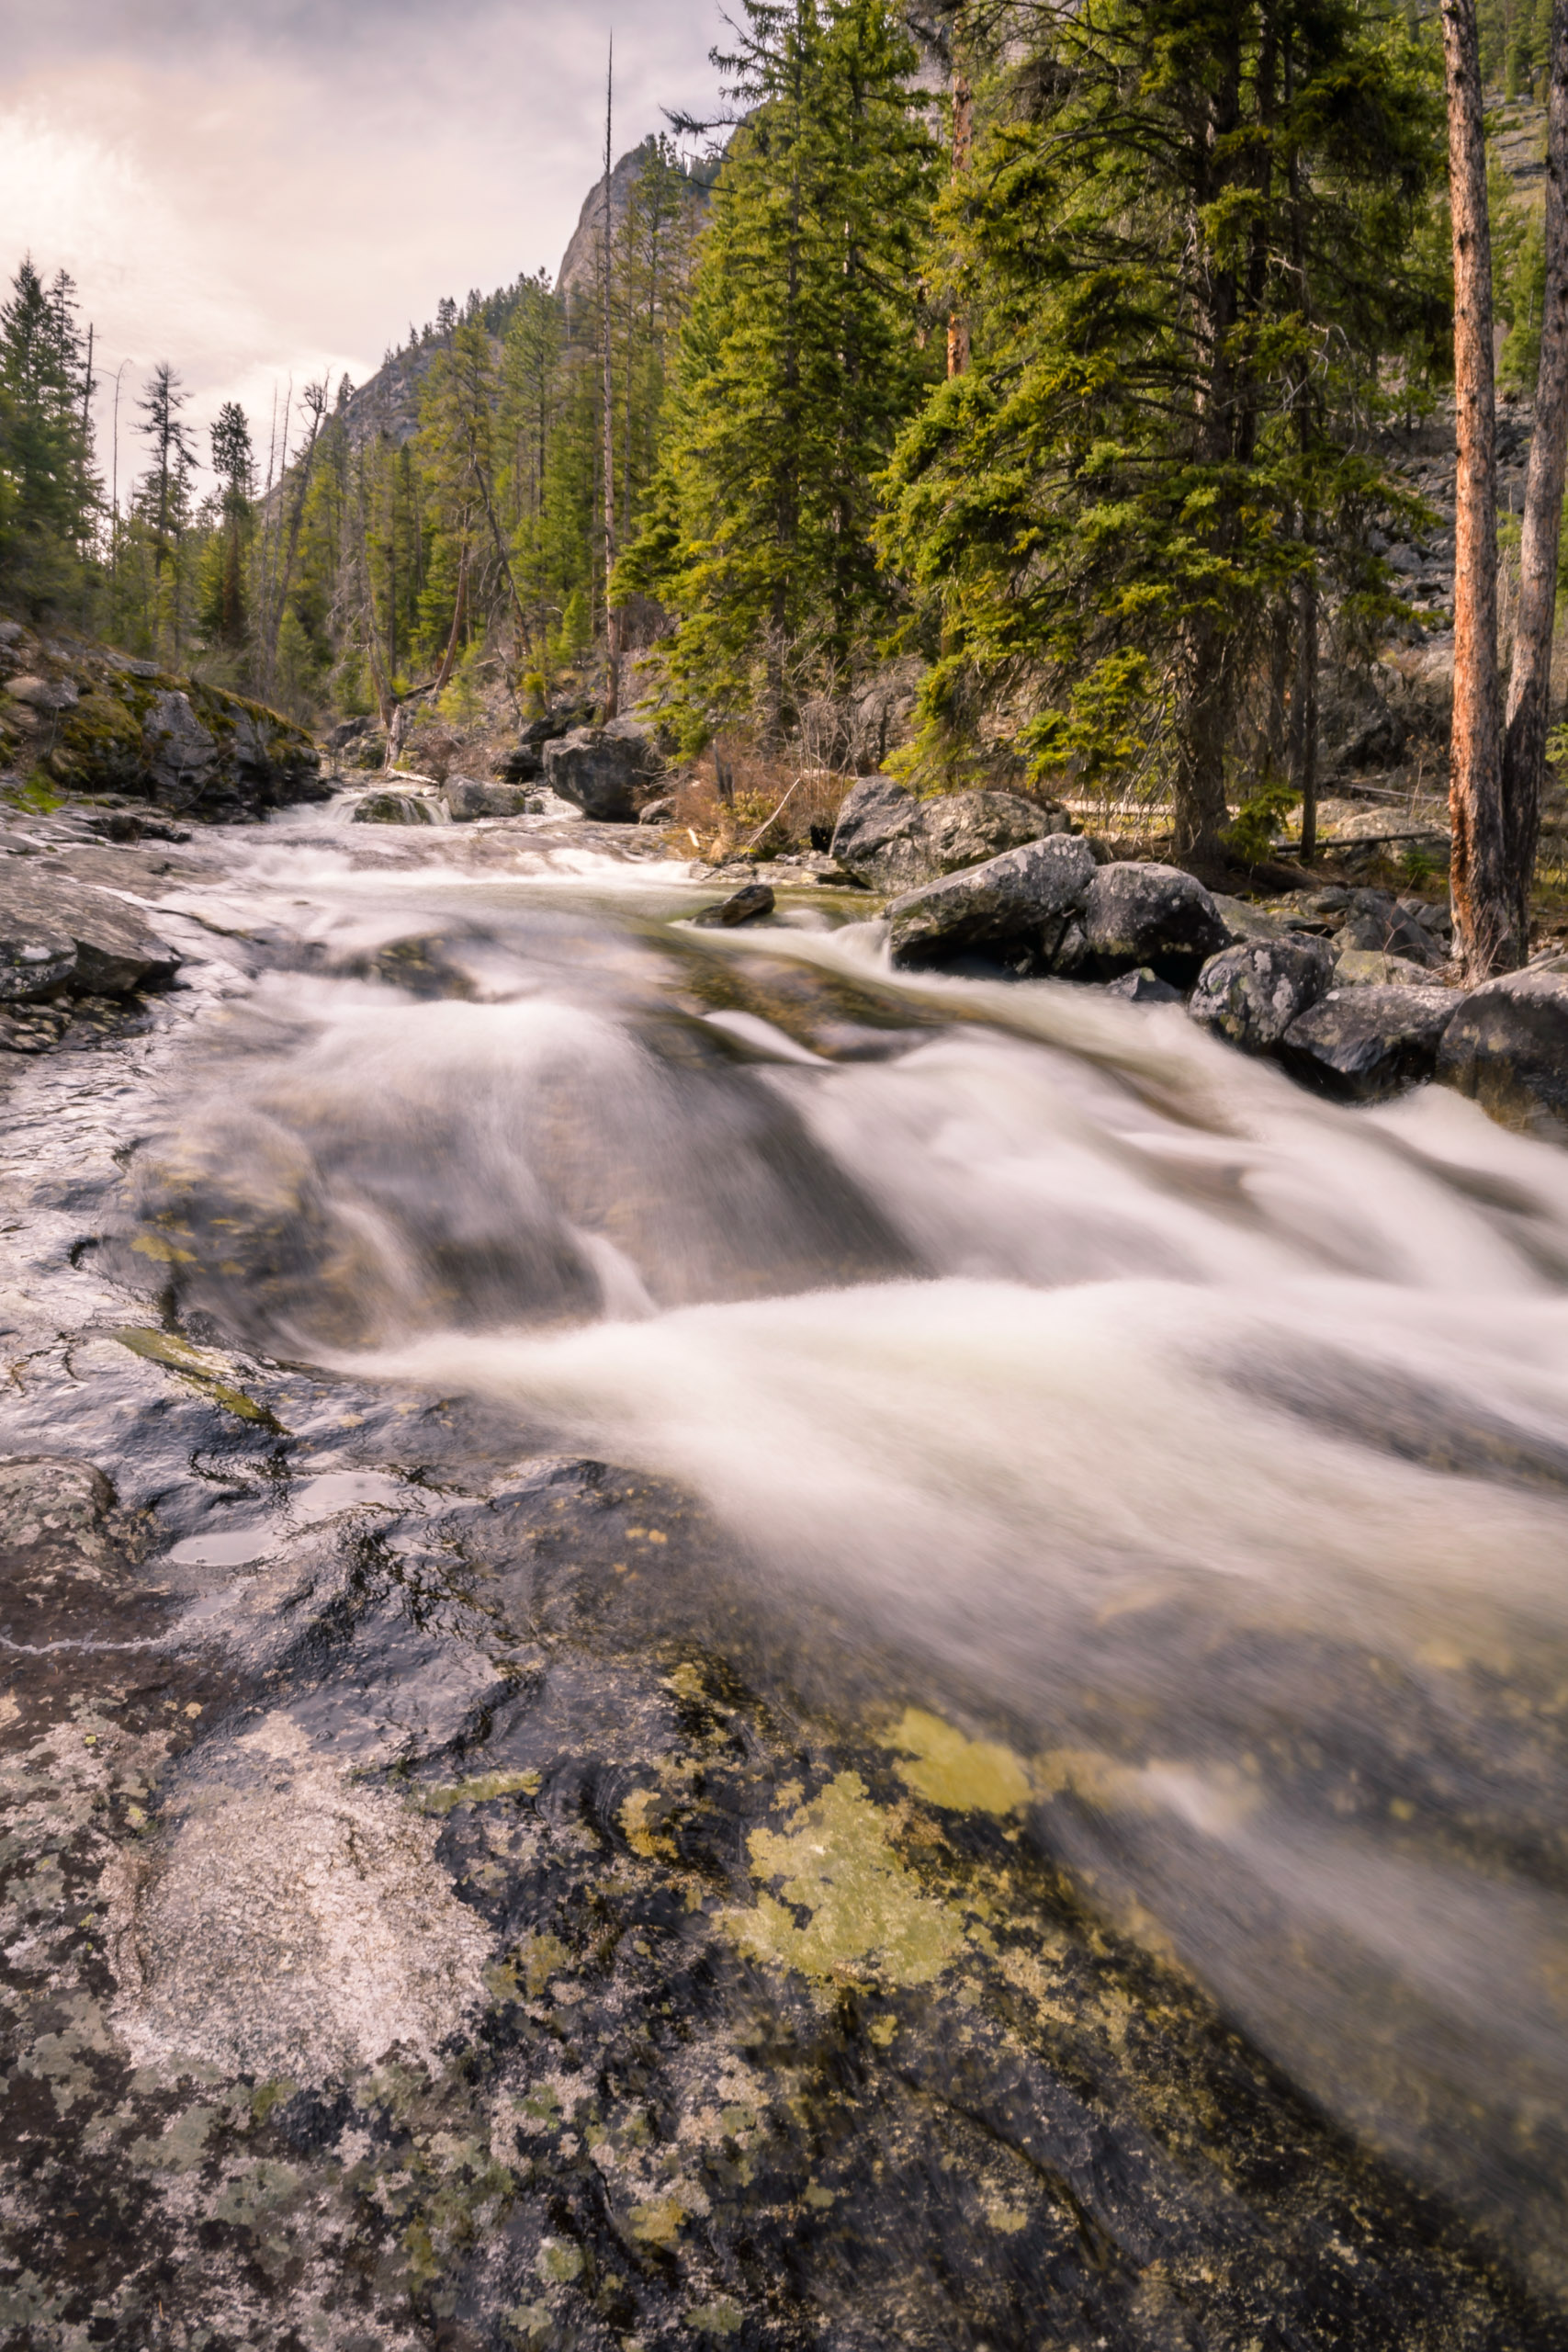 Centuries of running water has smoothed the boulders and cobbles of Bear creek